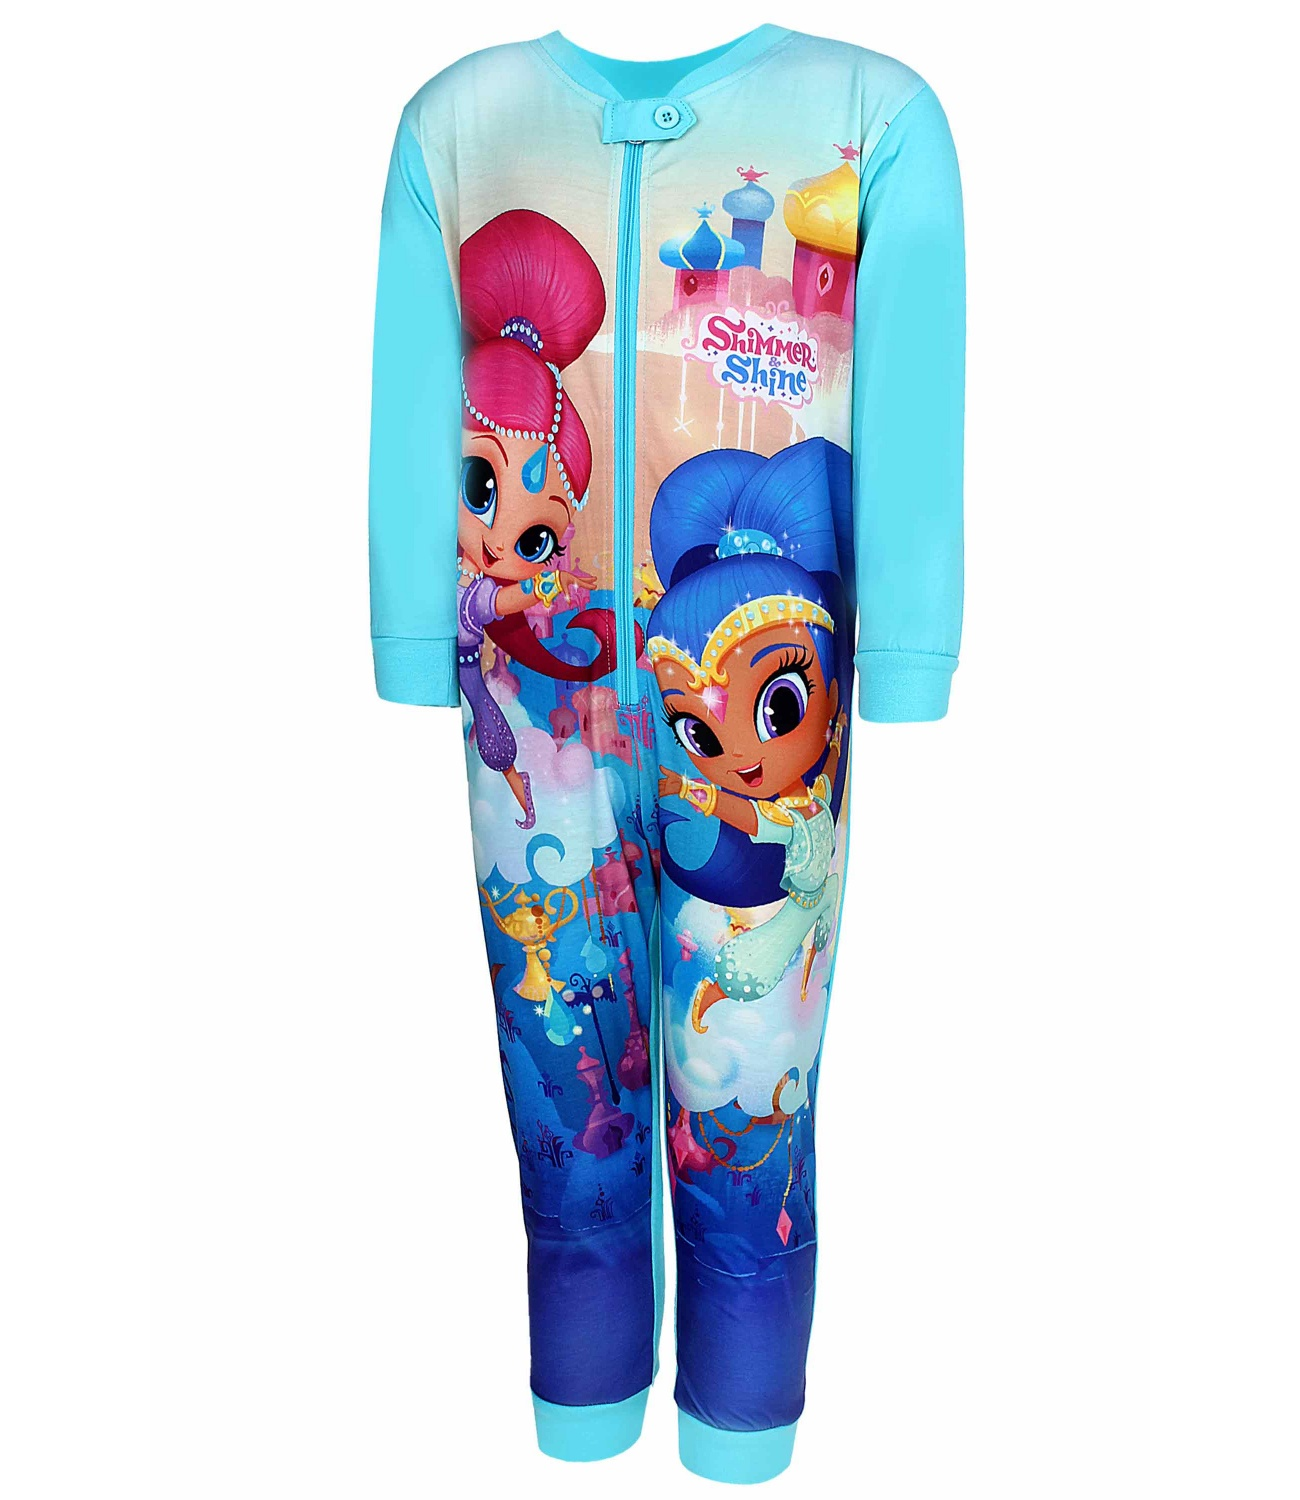 Shimmer and Shine® Salopeta pijama turcoaz 8334172